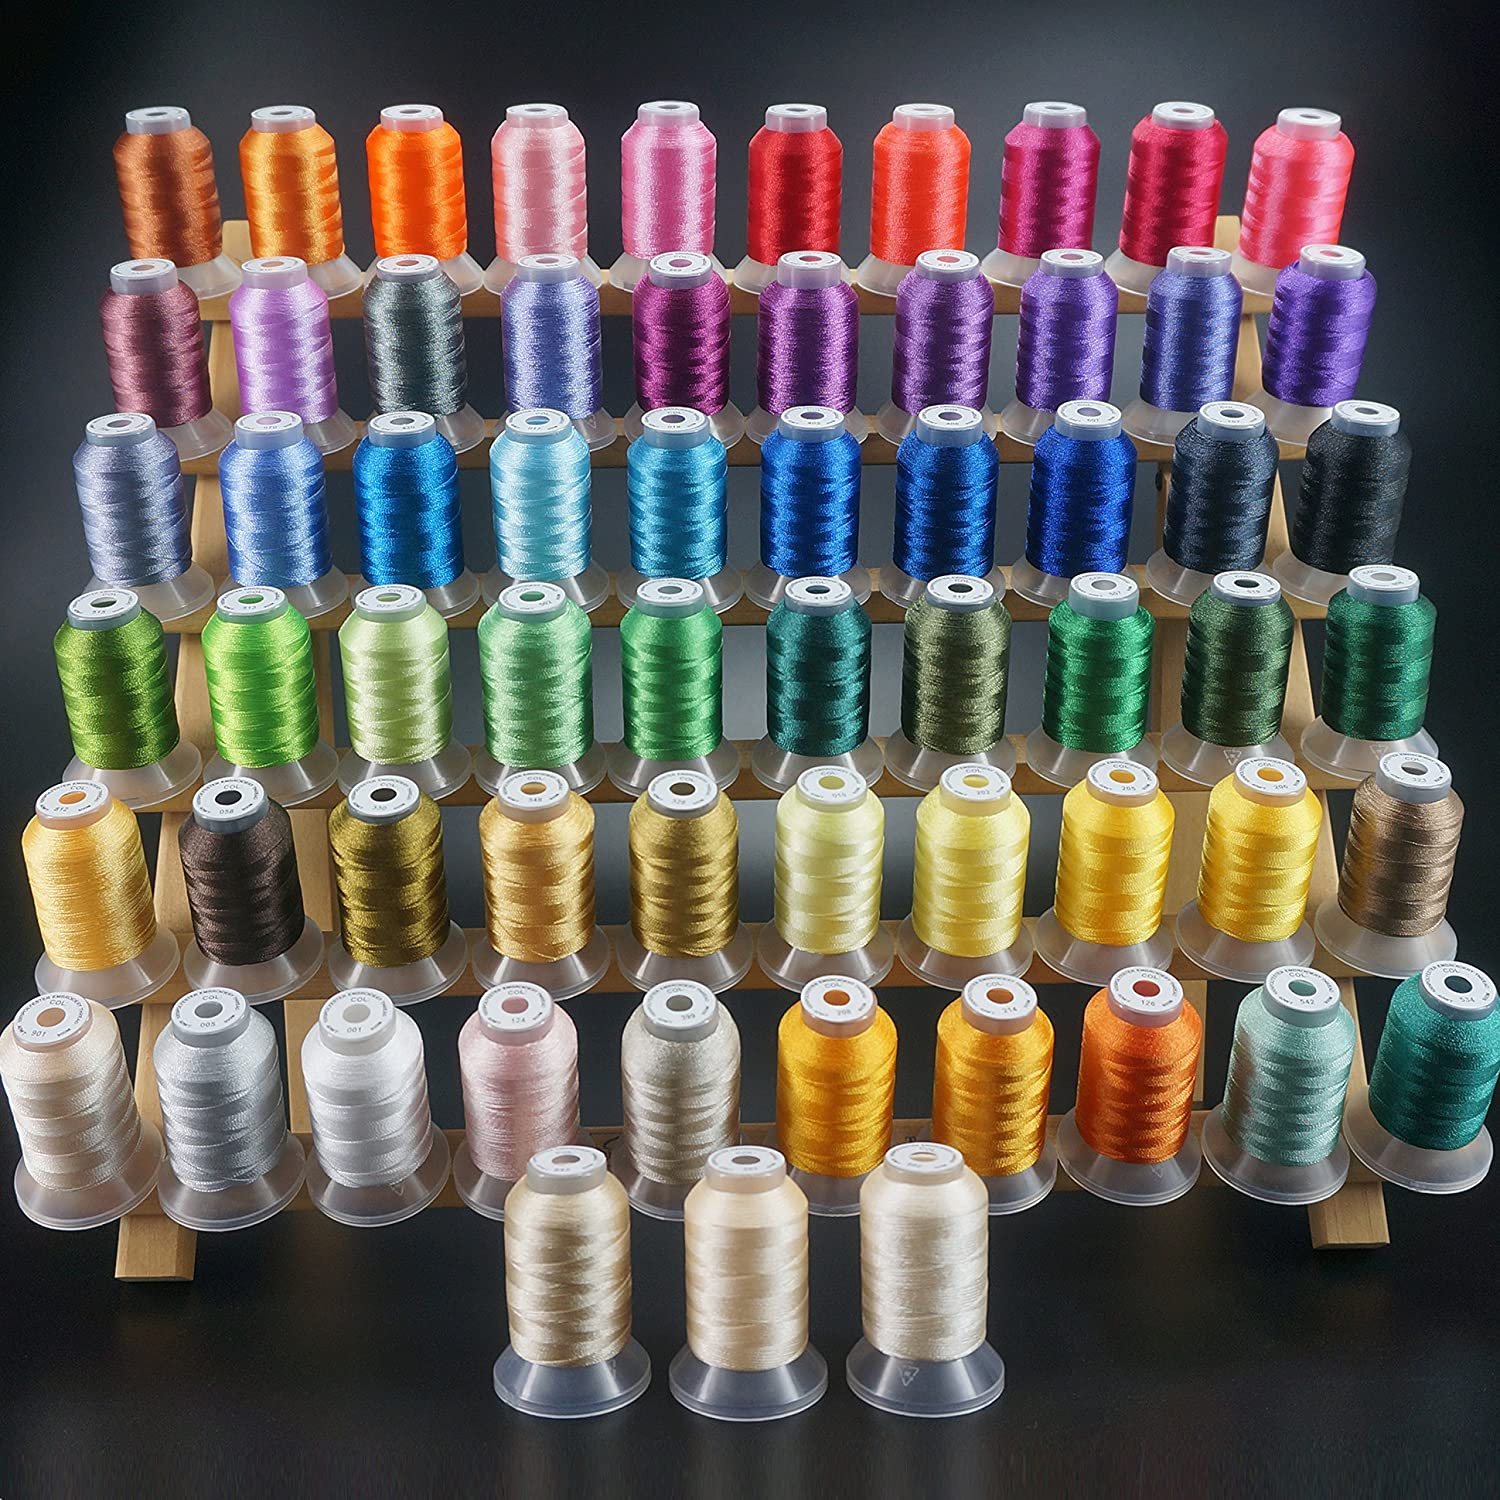 New Brothread 63 Brother Colors Polyester Embroidery Machine Thread Kit 500M (550Y) each Spool for Brother Babylock Janome Singer Pfaff Husqvarna Bernina Embroidery and Sewing Machines 4337015897